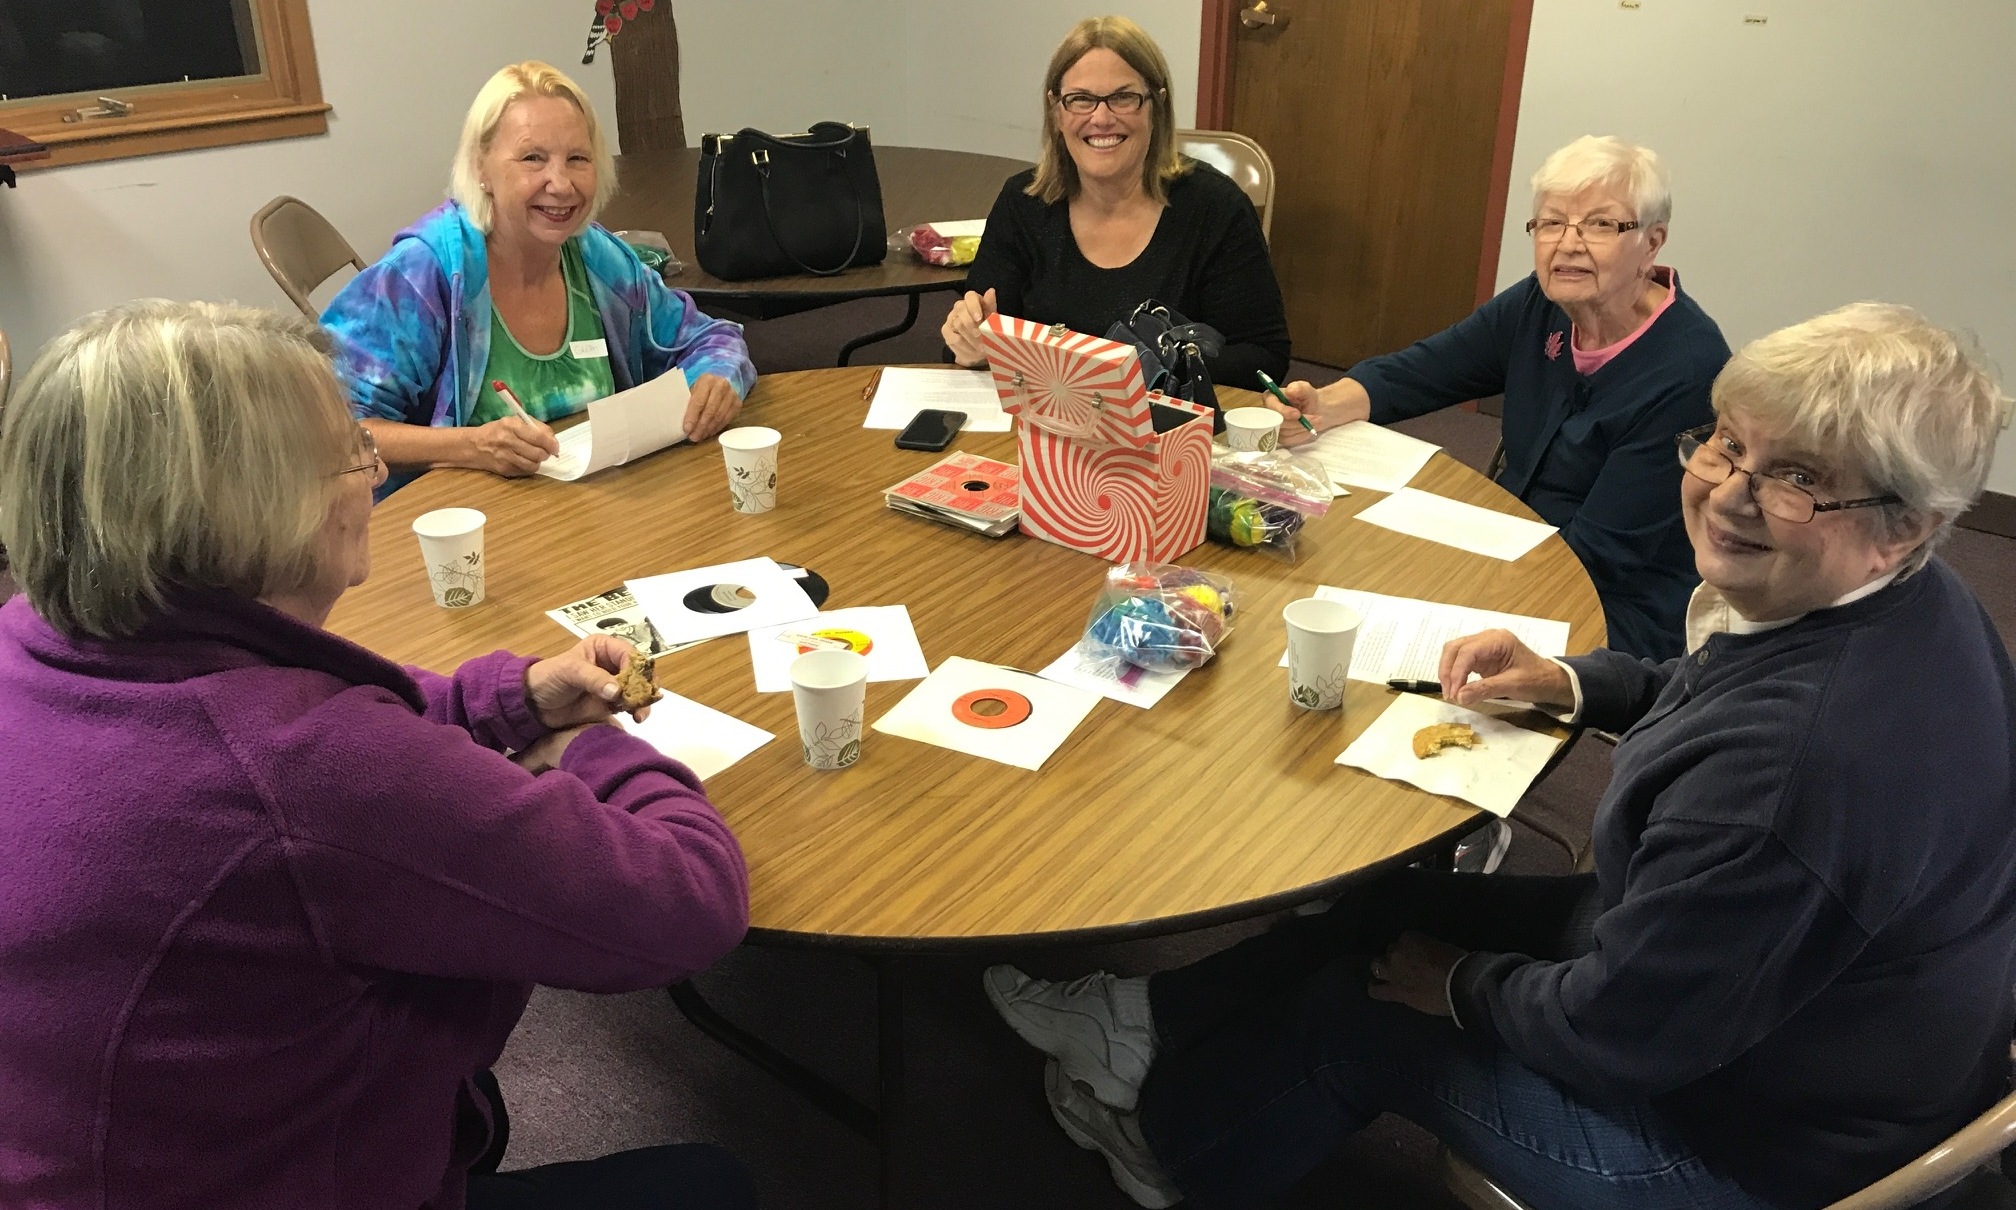 Book Groups  There are different book groups that meet throughout the year. You can email Pastor Josh to find out details about upcoming groups or stay tunned to the church newsletter as they are announced.  Contact  Clayton Edwards  for more info.